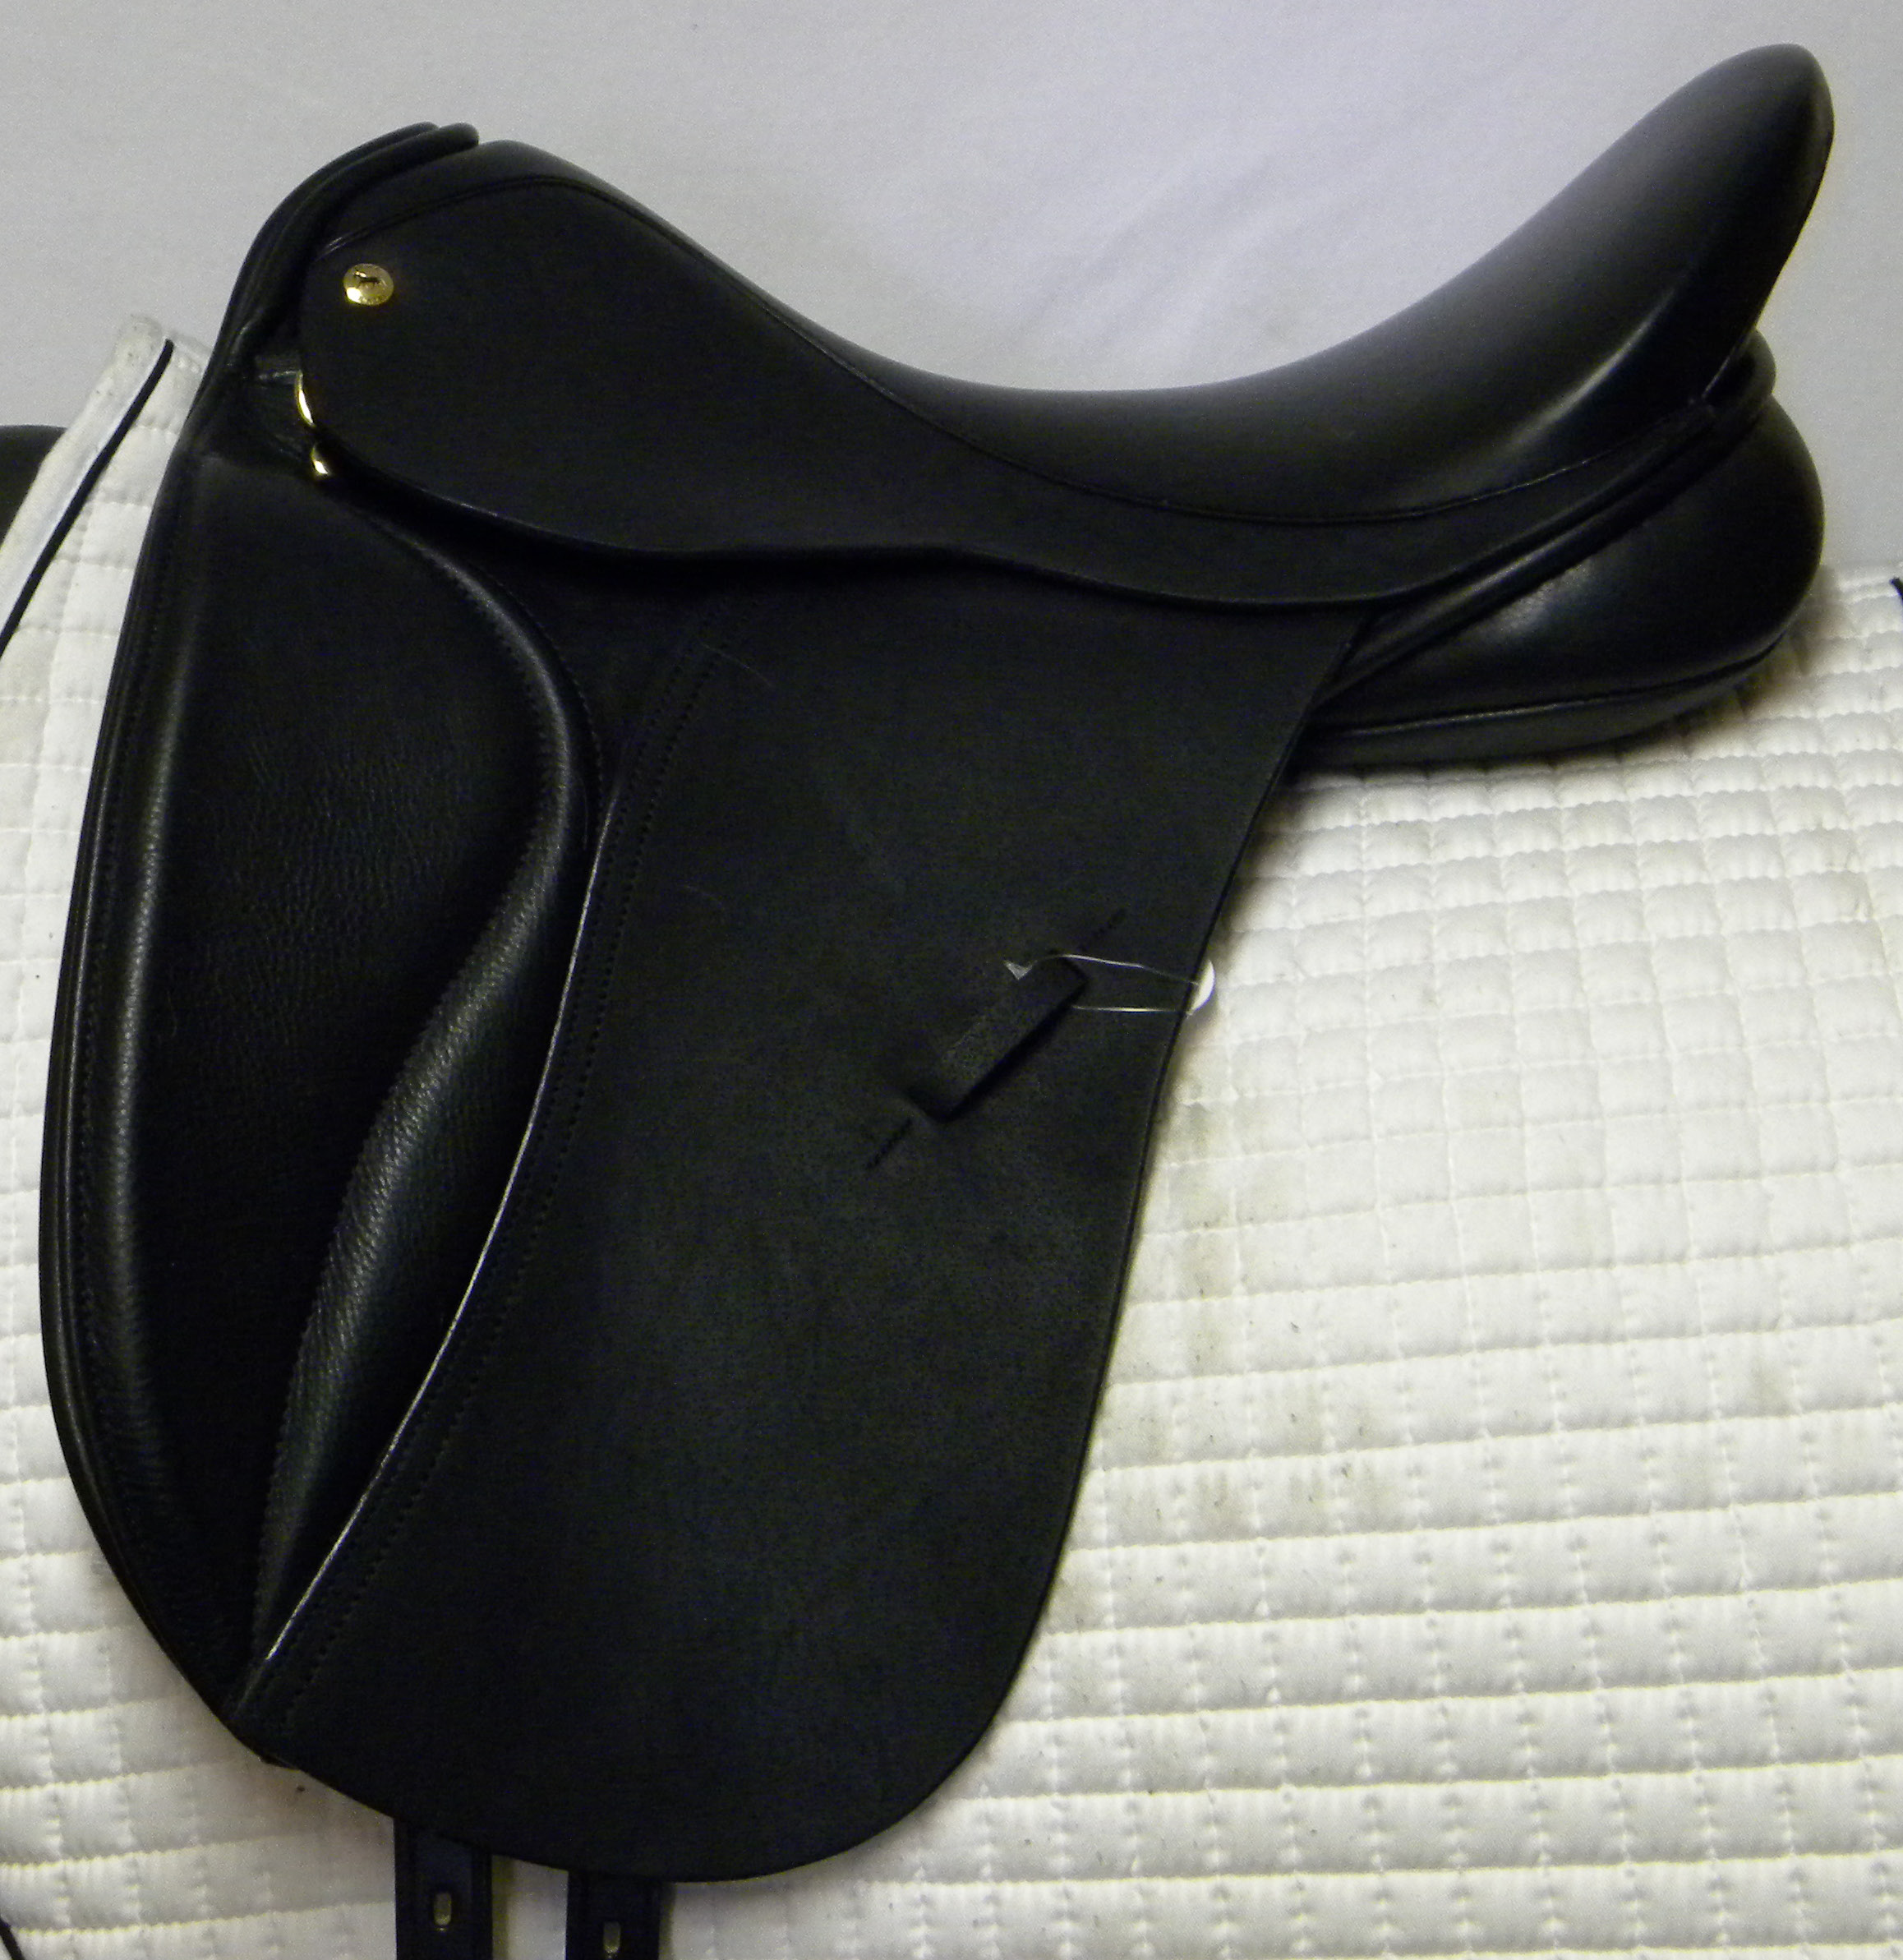 Used Saddles & Demo Saddles for Sale | Trumbull Mountain